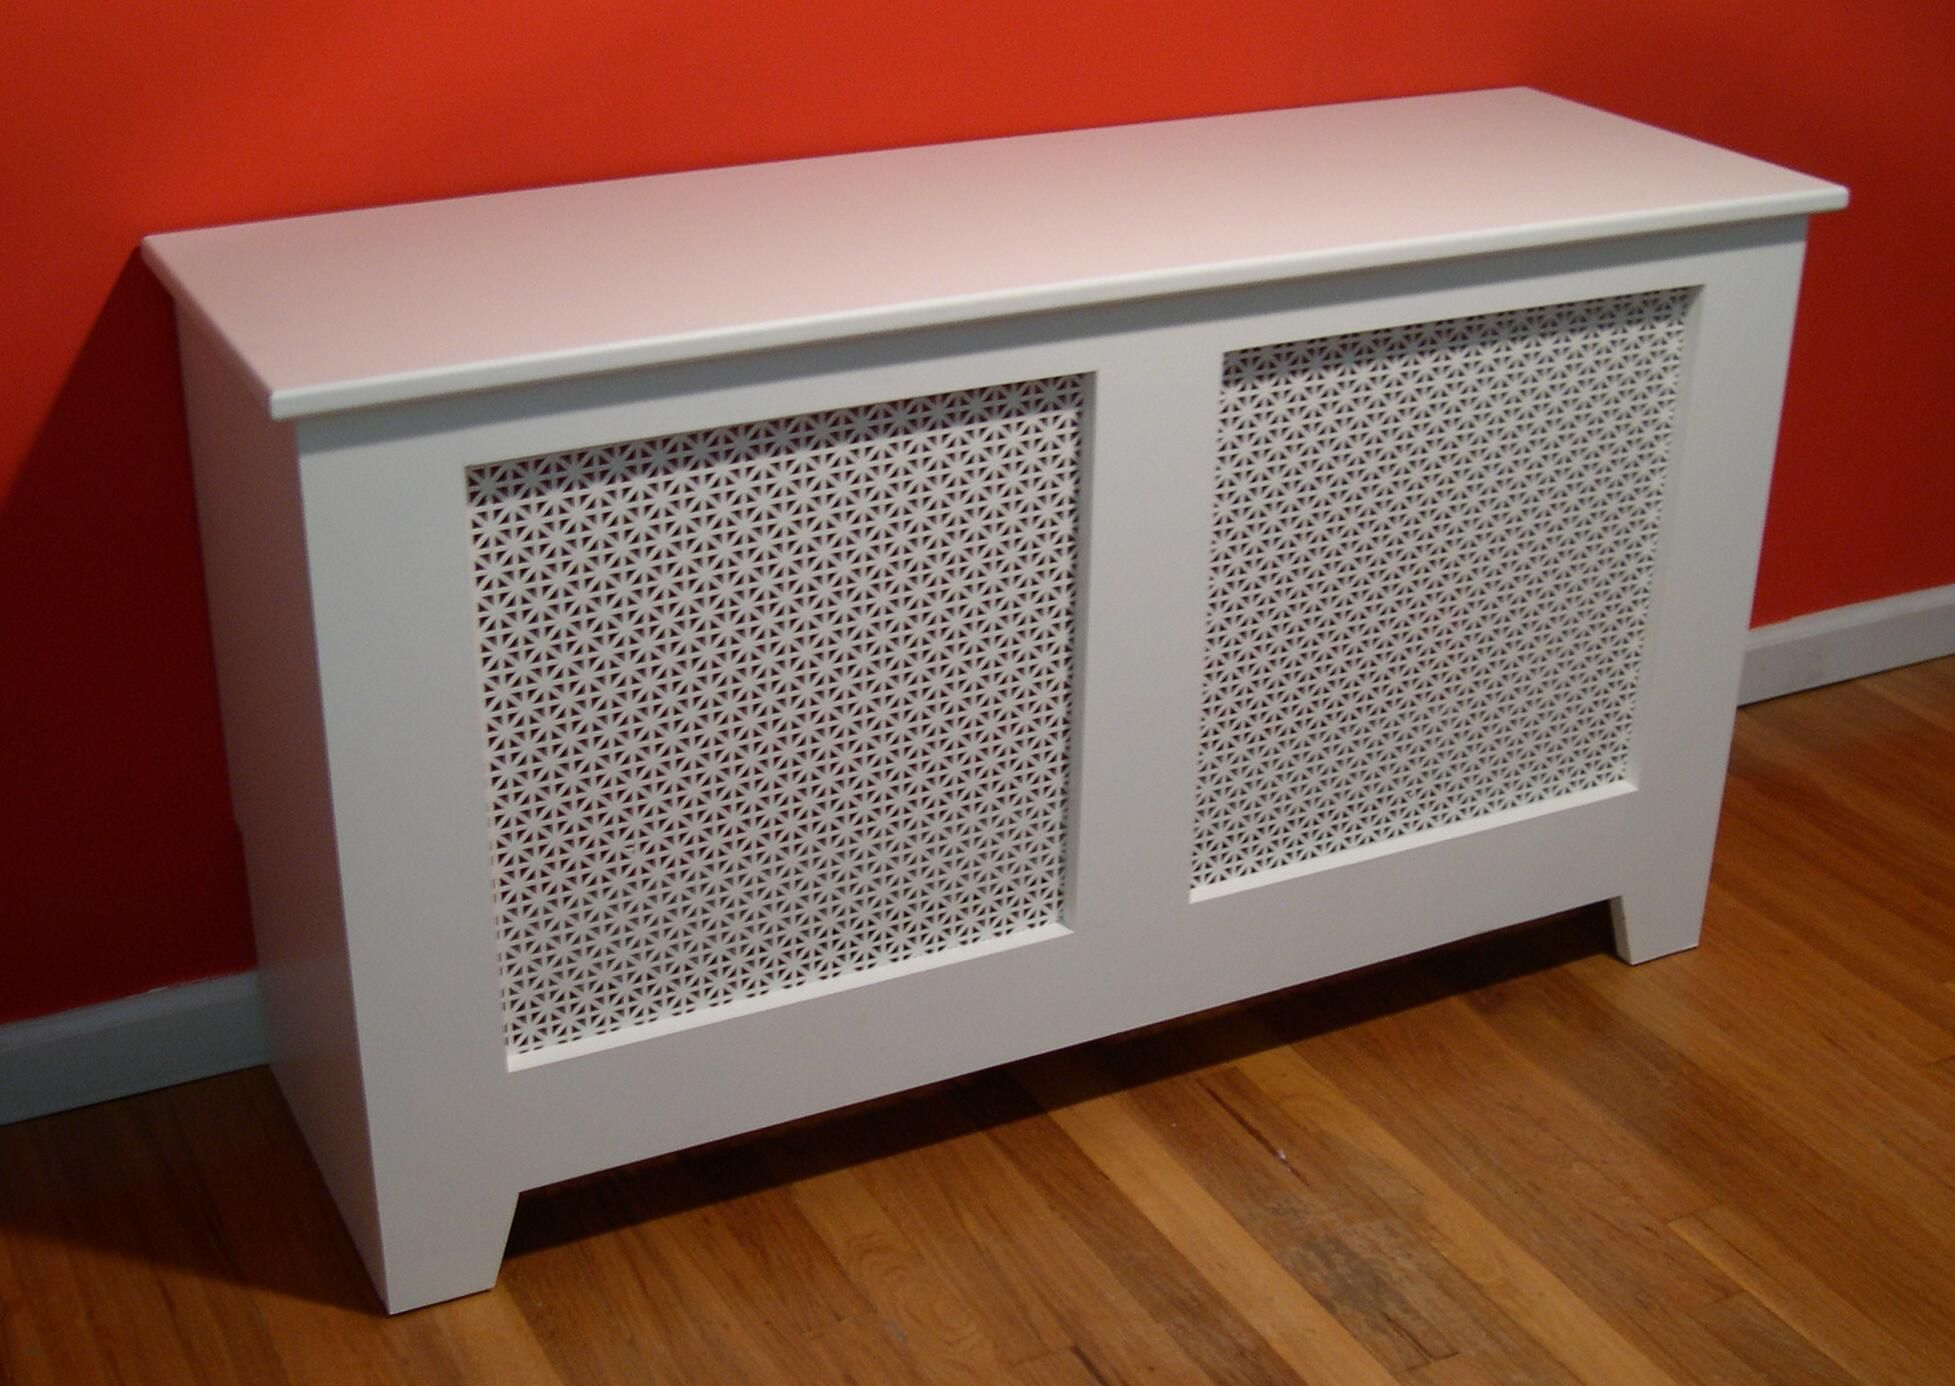 Google Image Result For Http Www Westchesterwoodcrafters Com Images Dscn2698a Radiator Cover Custom Radiator Covers Wall Heater Cover